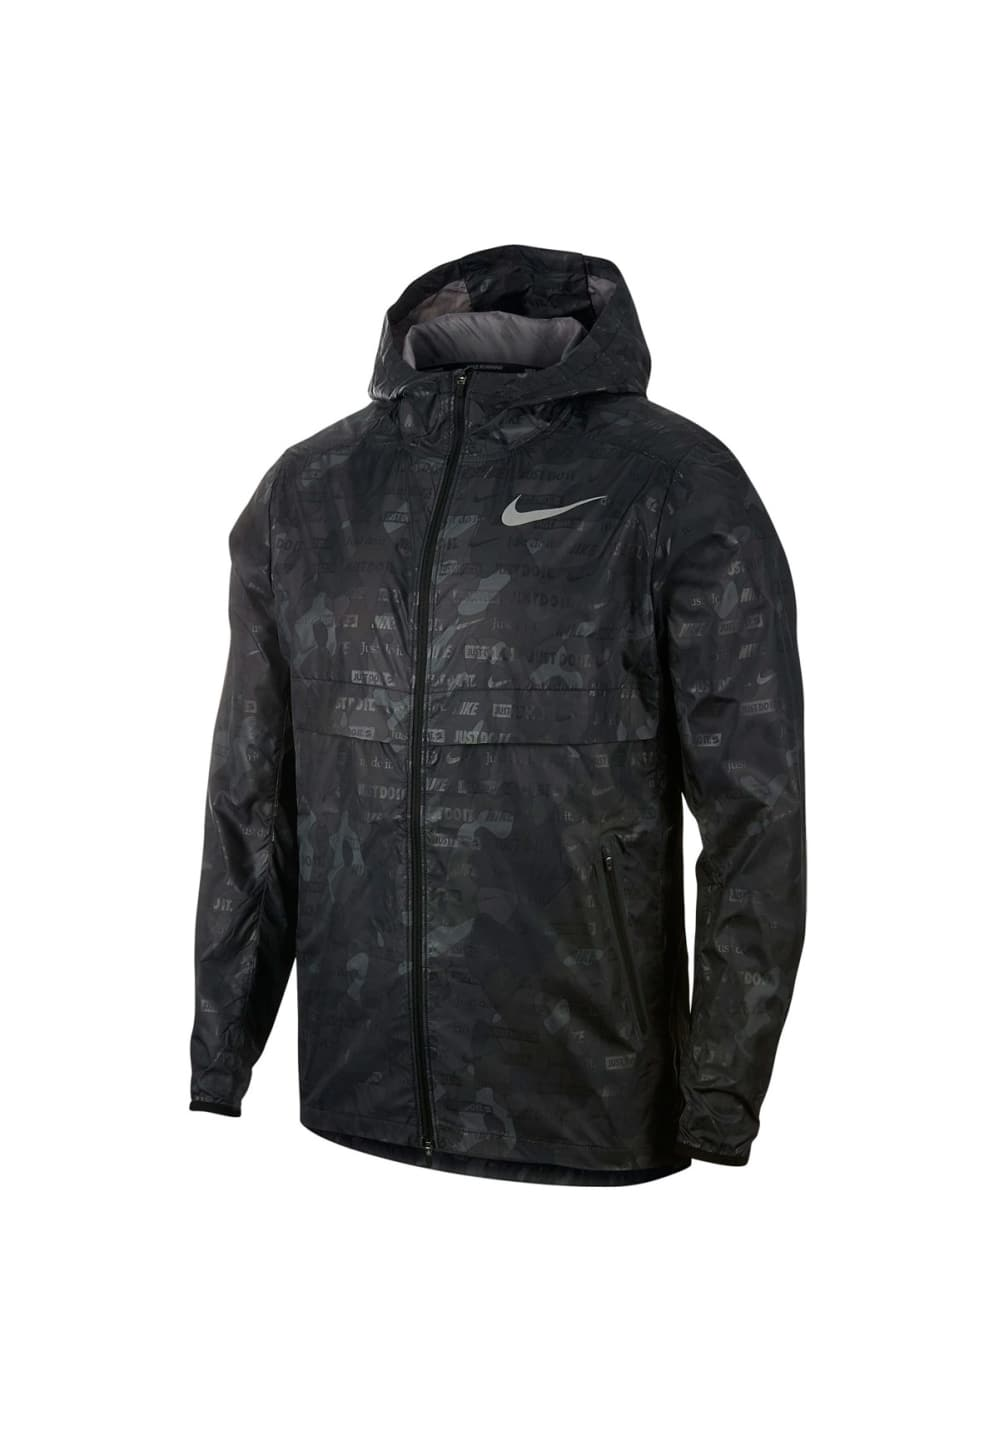 Shield Ghost Flash Jacket Homme Nike Pour Running Vestes Course SHqdHFw